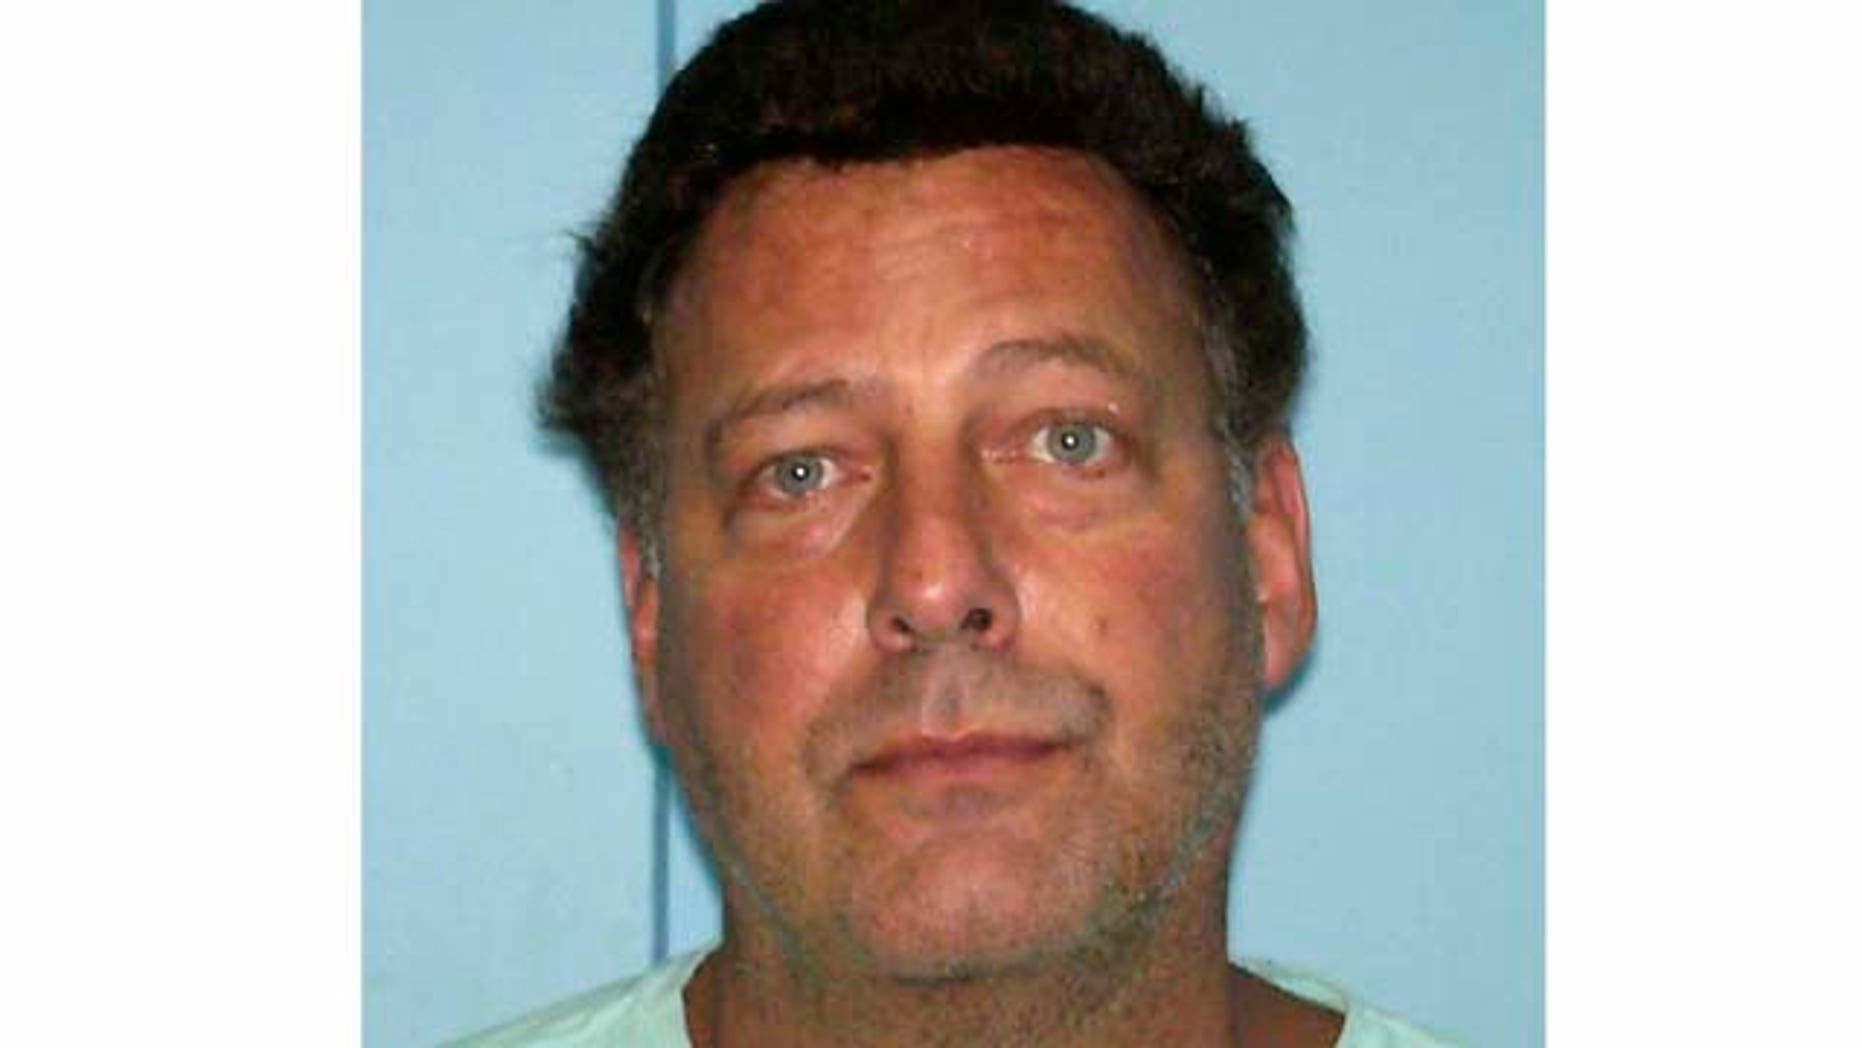 FILE - In this file photo provided Thursday Aug. 11, 2011 by Aruba police, U.S. citizen Gary V. Giordano, 50, of Gaithersburg, Maryland is shown in an Aruba police mugshot in Oranjestad, Aruba.  Giordano, detained in Aruba in the presumed death of his travel partner Robyn Gardner, had an accidental-death insurance policy on her for $1.5 million and sought to claim the money two days after reporting her missing, a person who provided information to the investigation has told The Associated Press.   (AP Photo/Aruba Police, File)